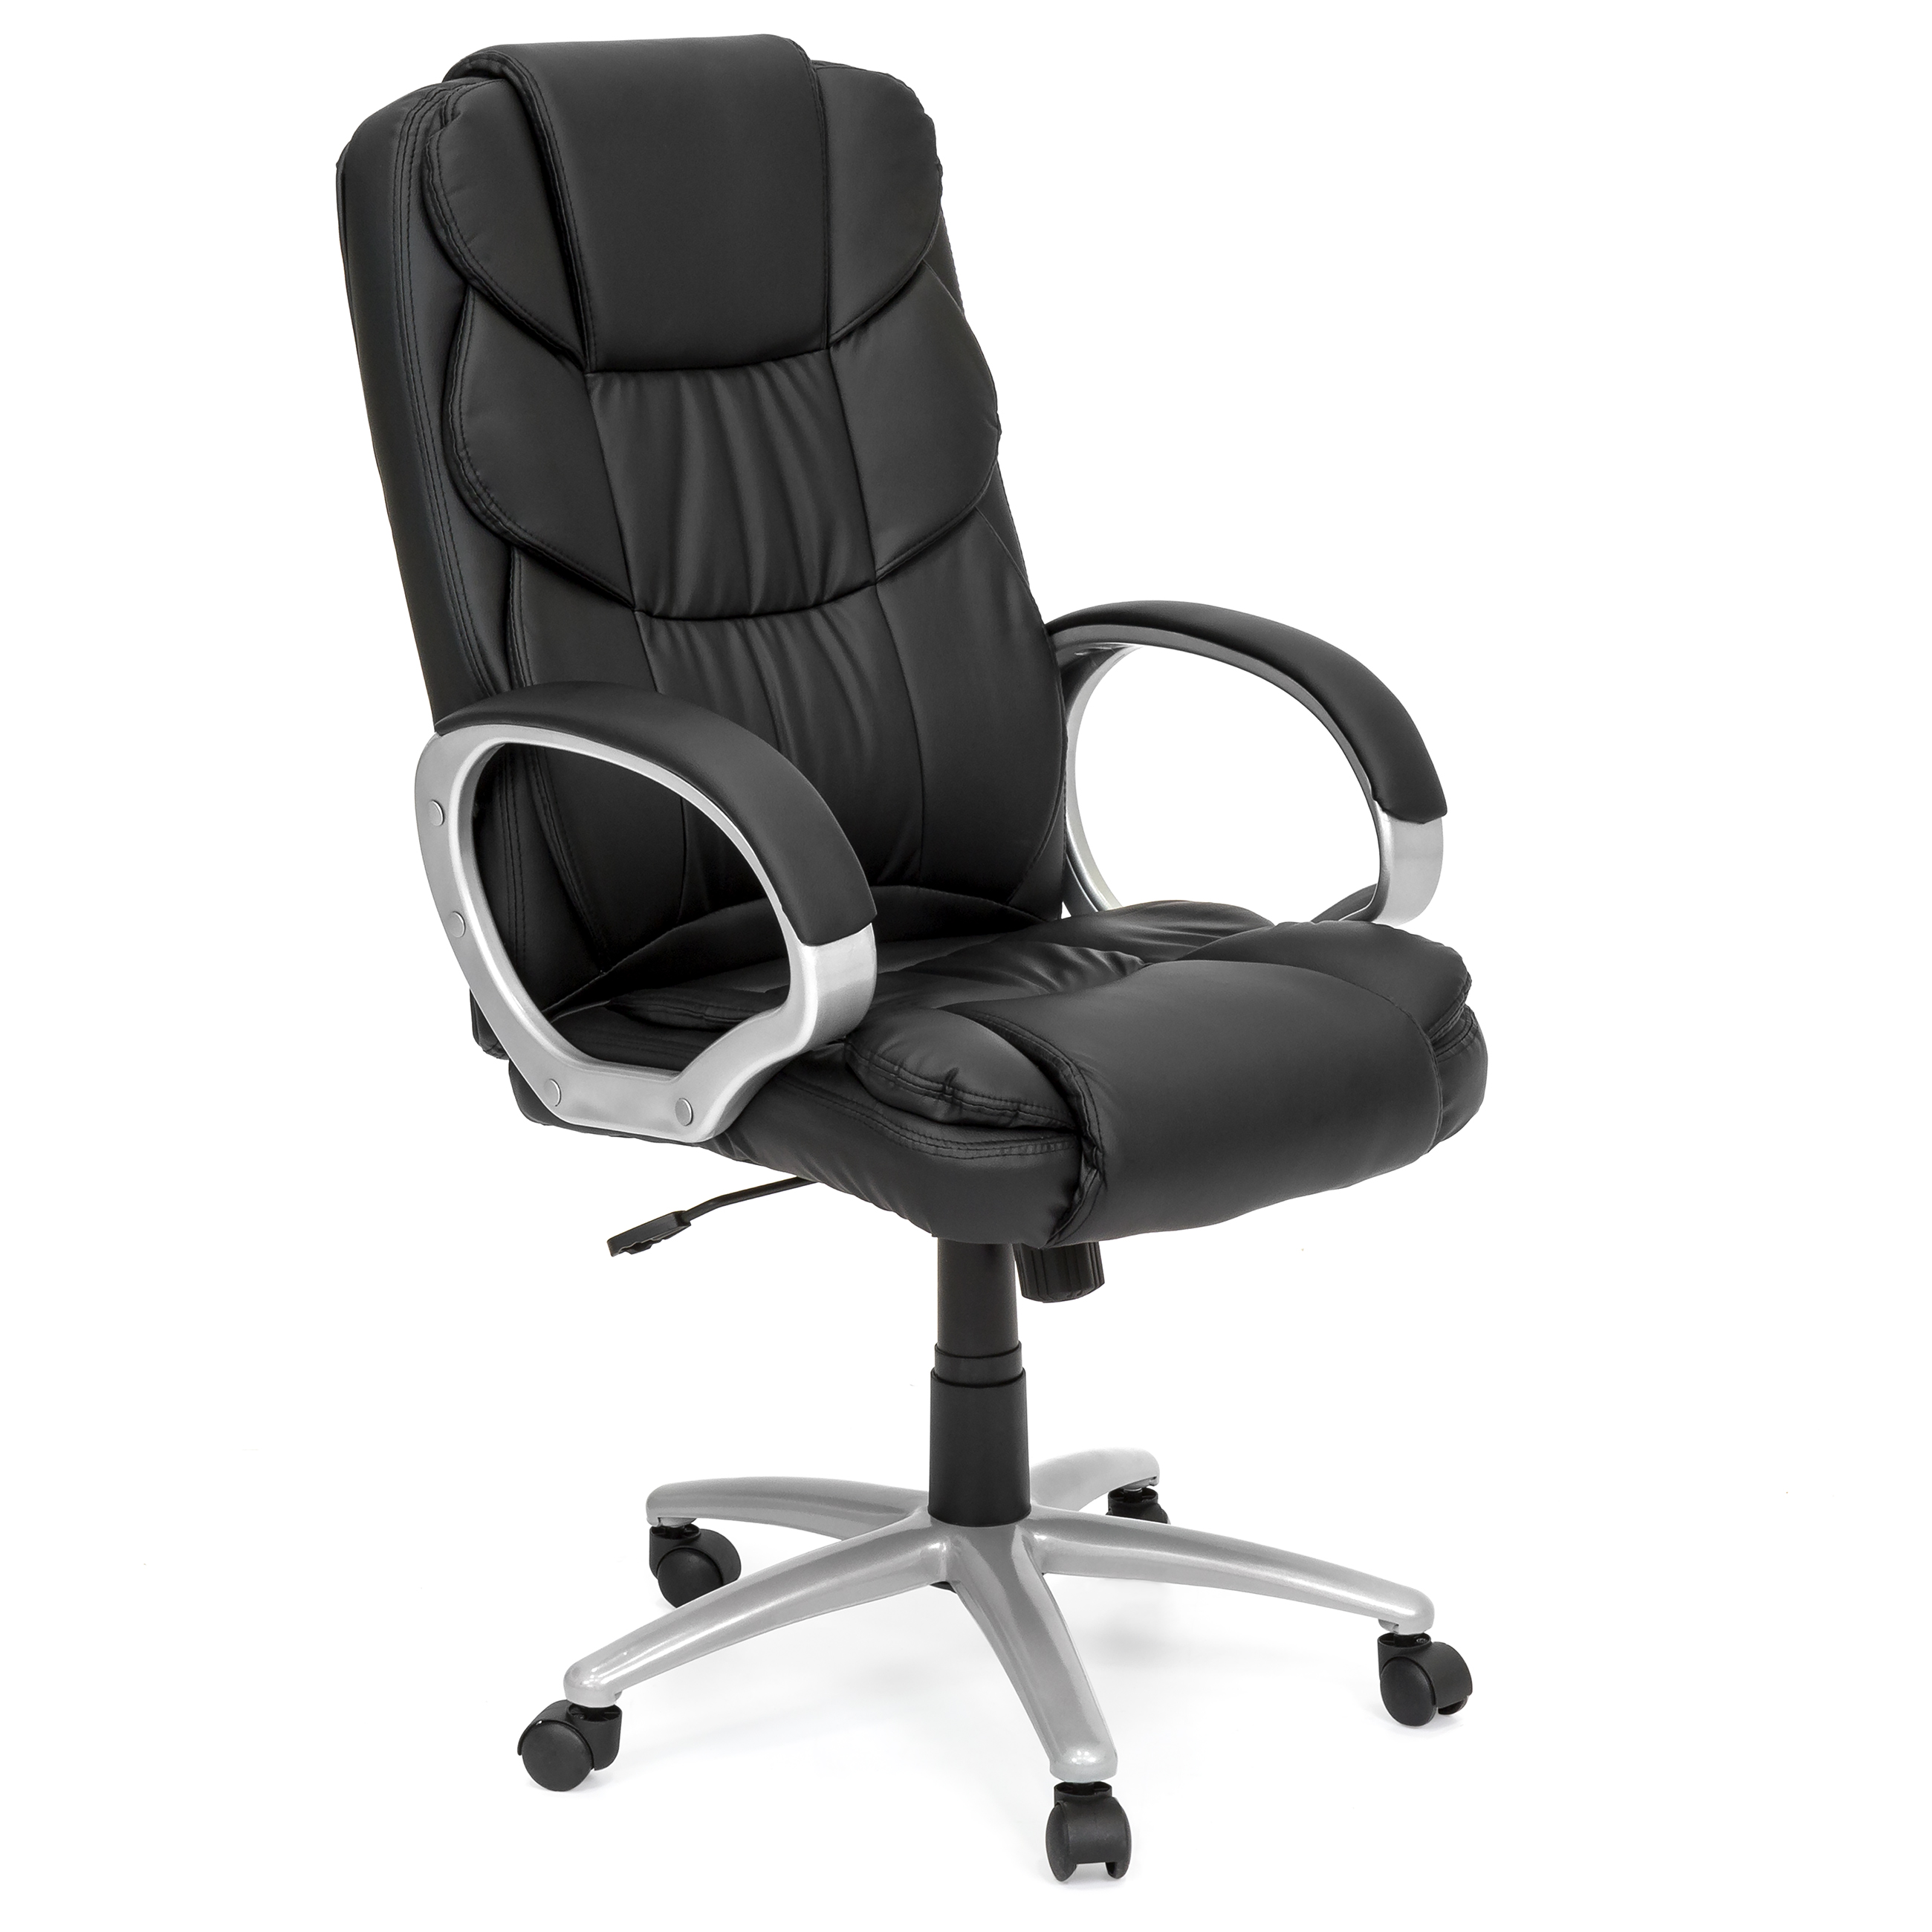 office chair material. Best Choice Products Ergonomic PU Leather High Back Office Chair, Black Chair Material A